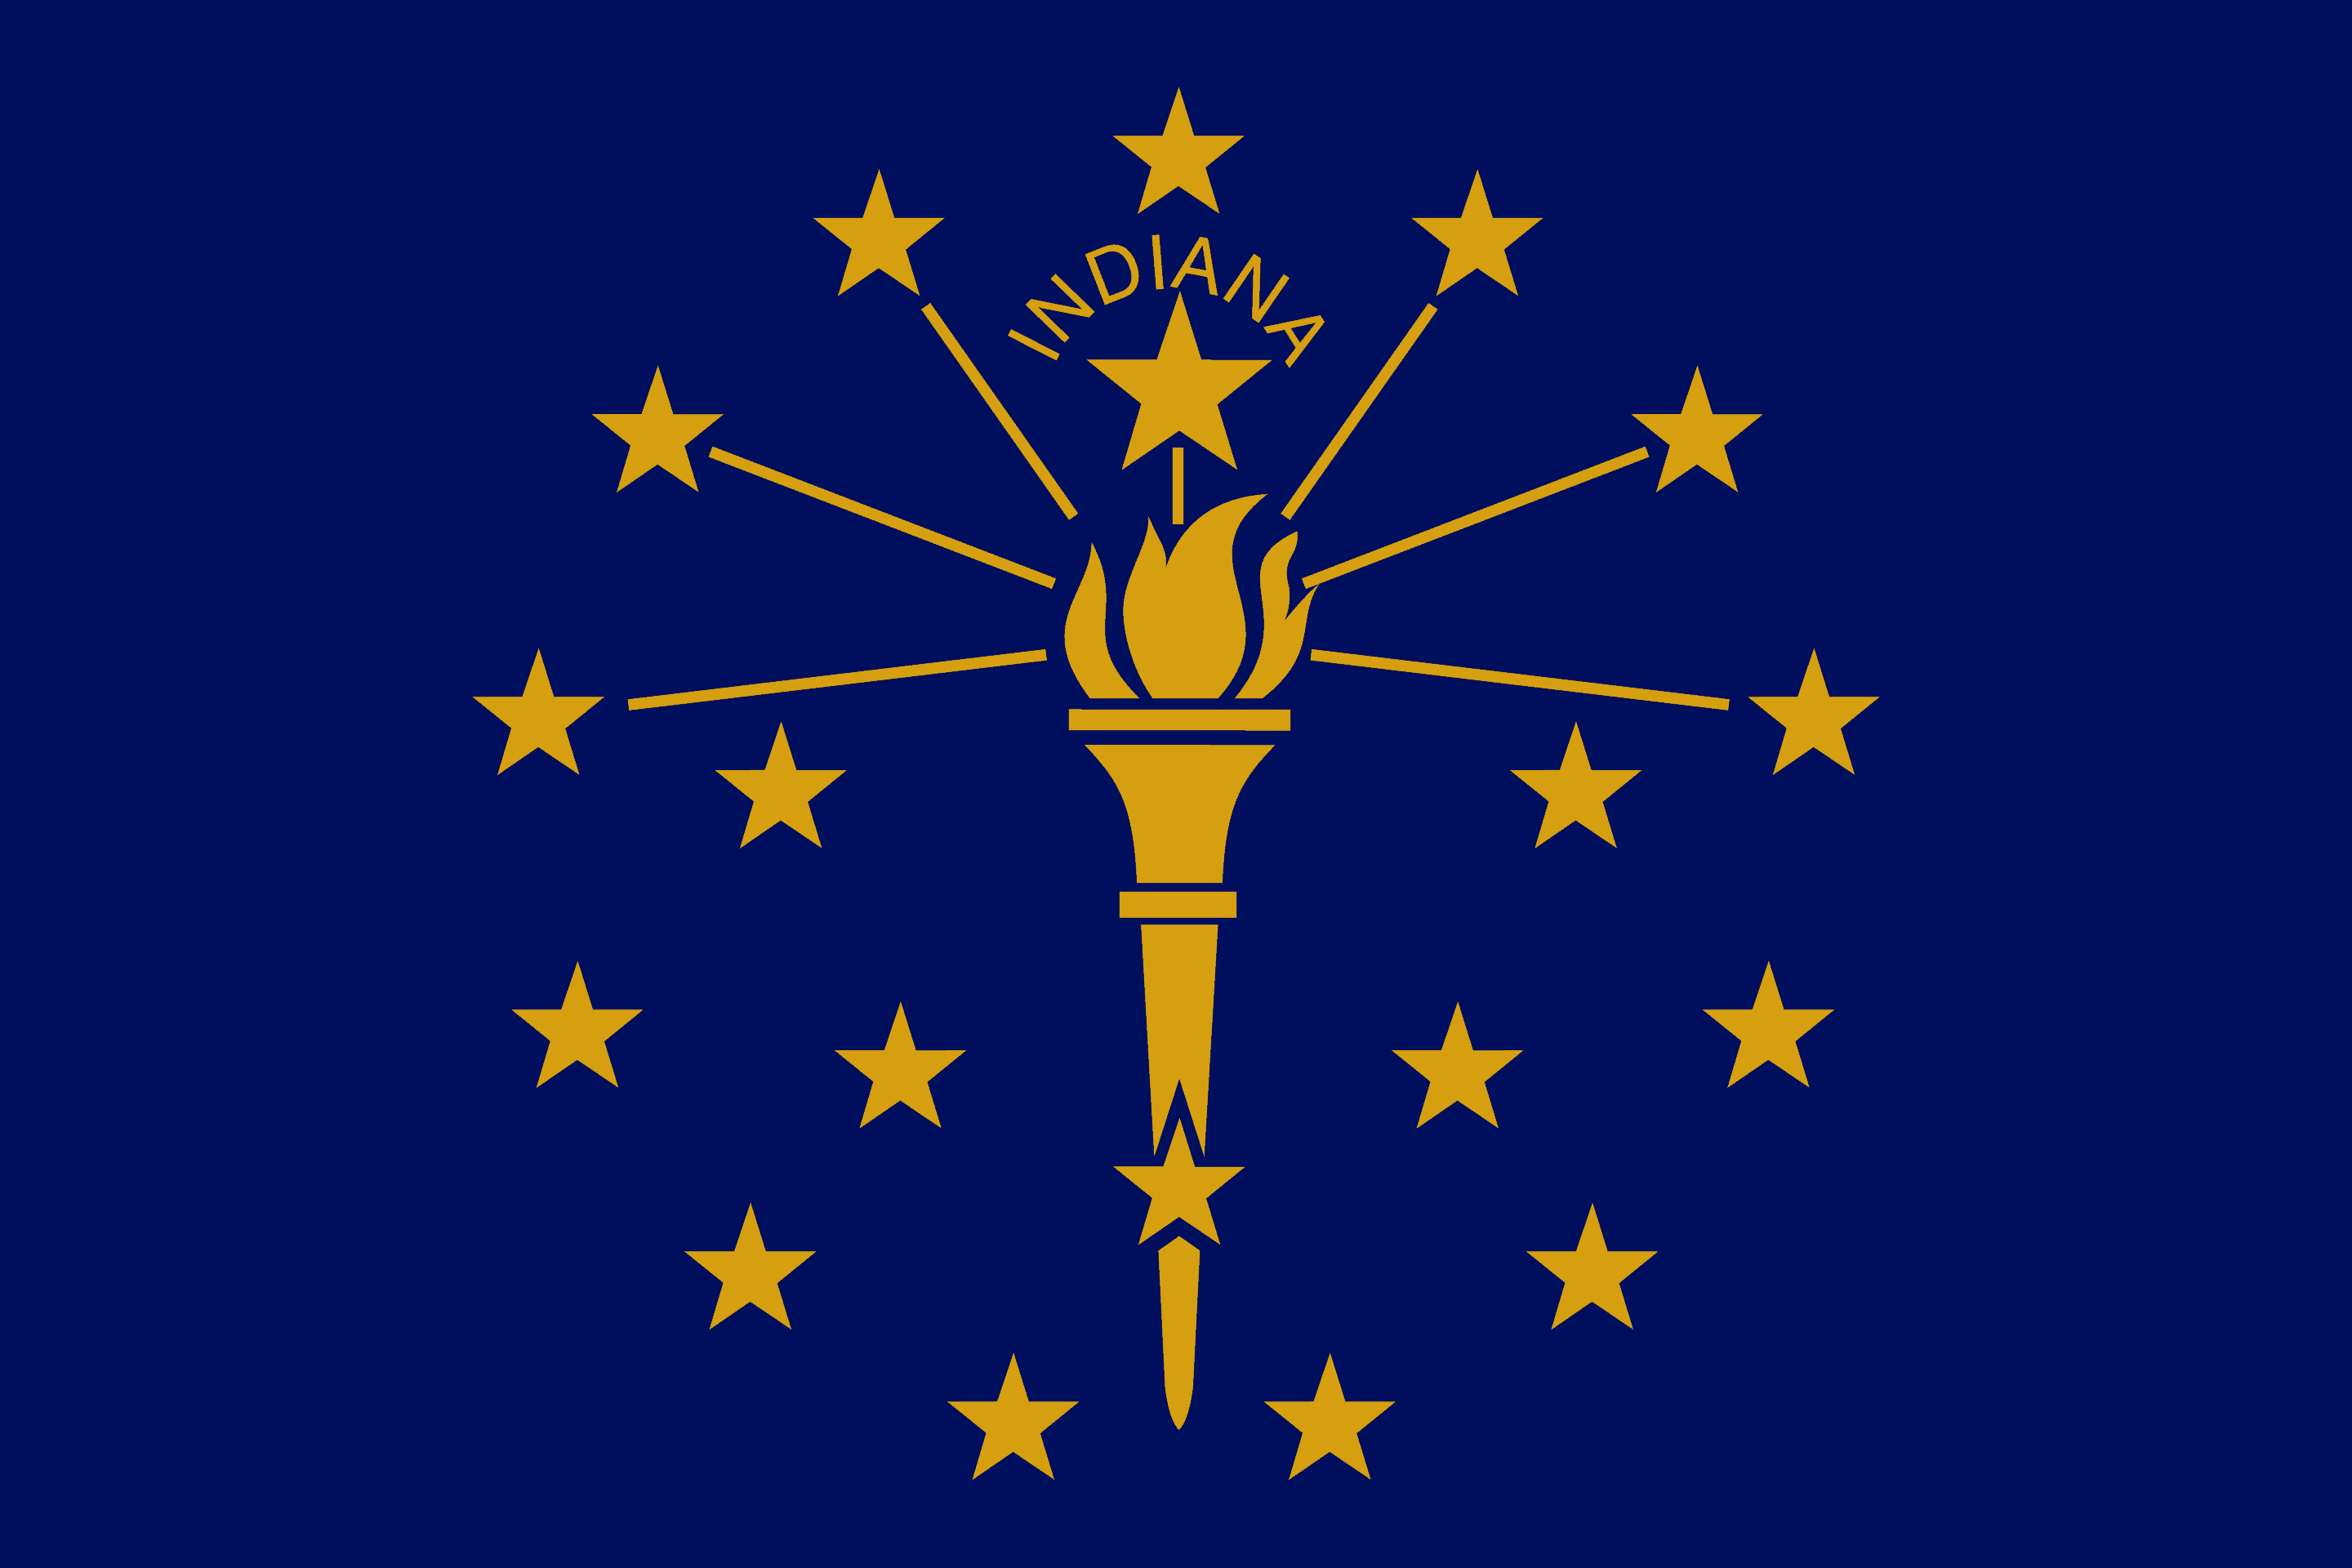 State of Indiana Flag - Indiana Drone Laws